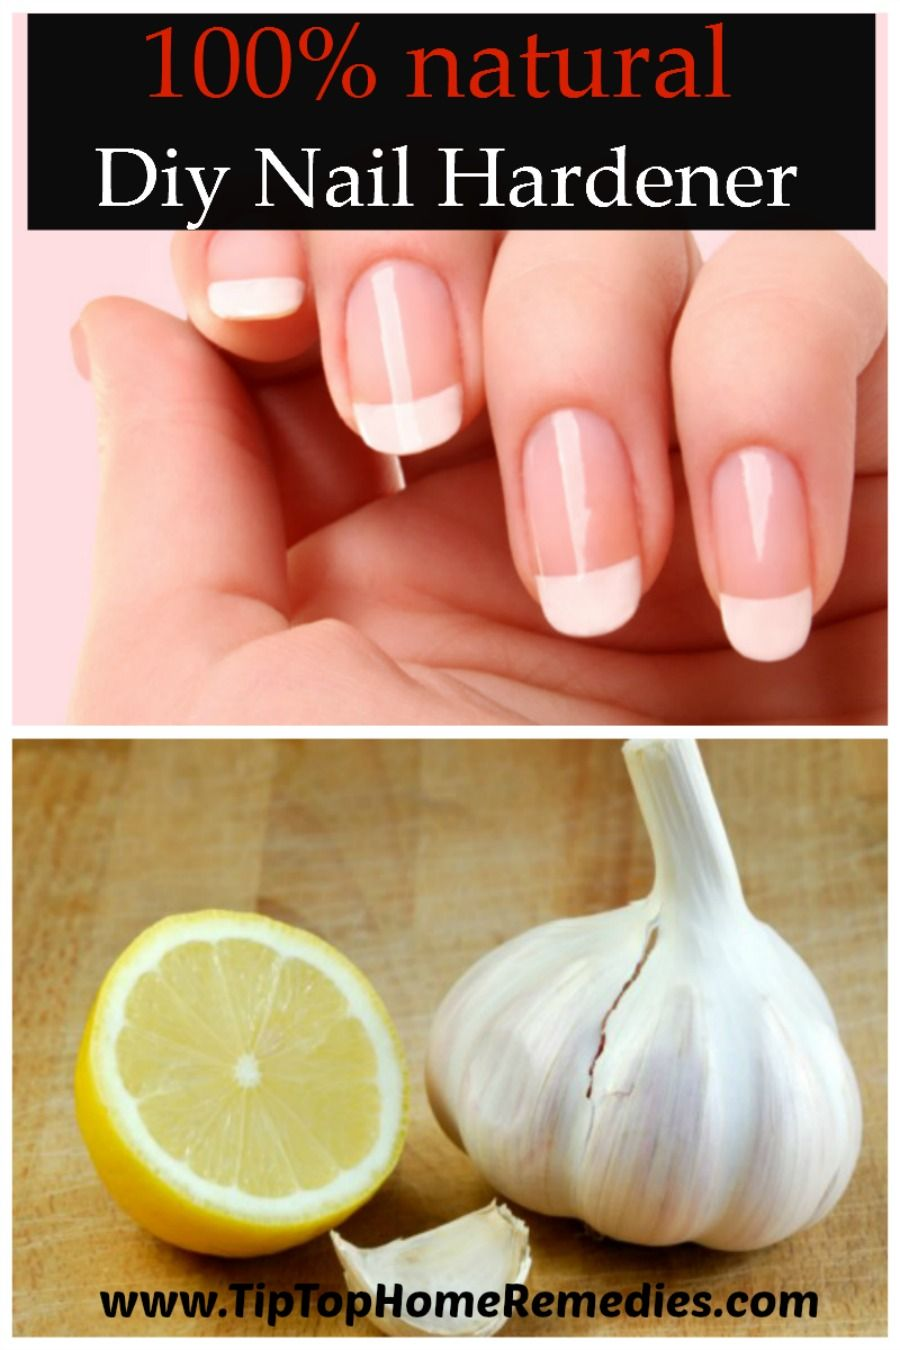 Diy Nail Hardener 100 Natural Will Save You Big Money And Gives You Strong And Healthy Nails Ti Diy Healthy Nails Homemade Nail Strengthener Nail Hardener